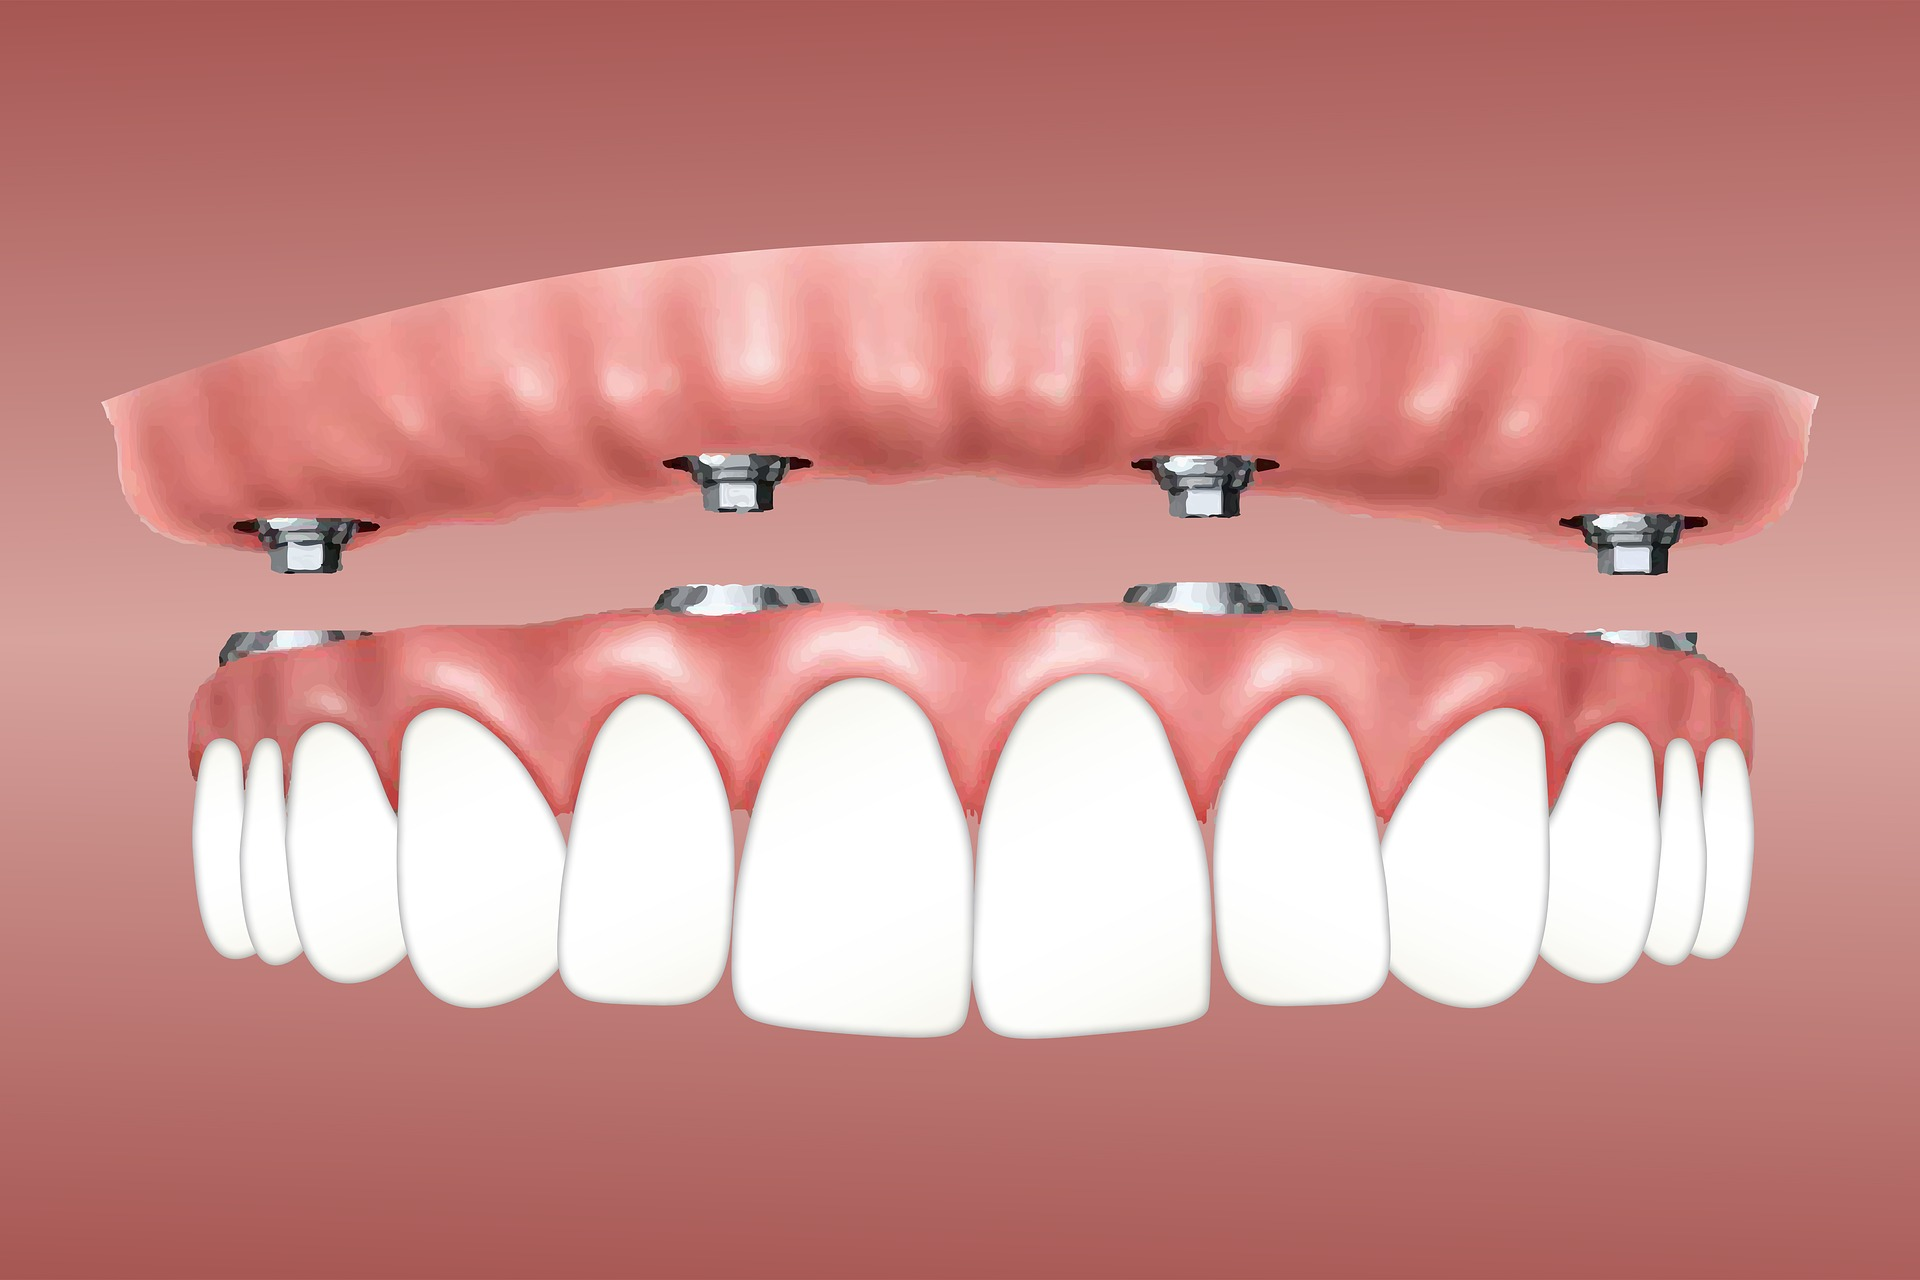 How To Care For Your Aligner?